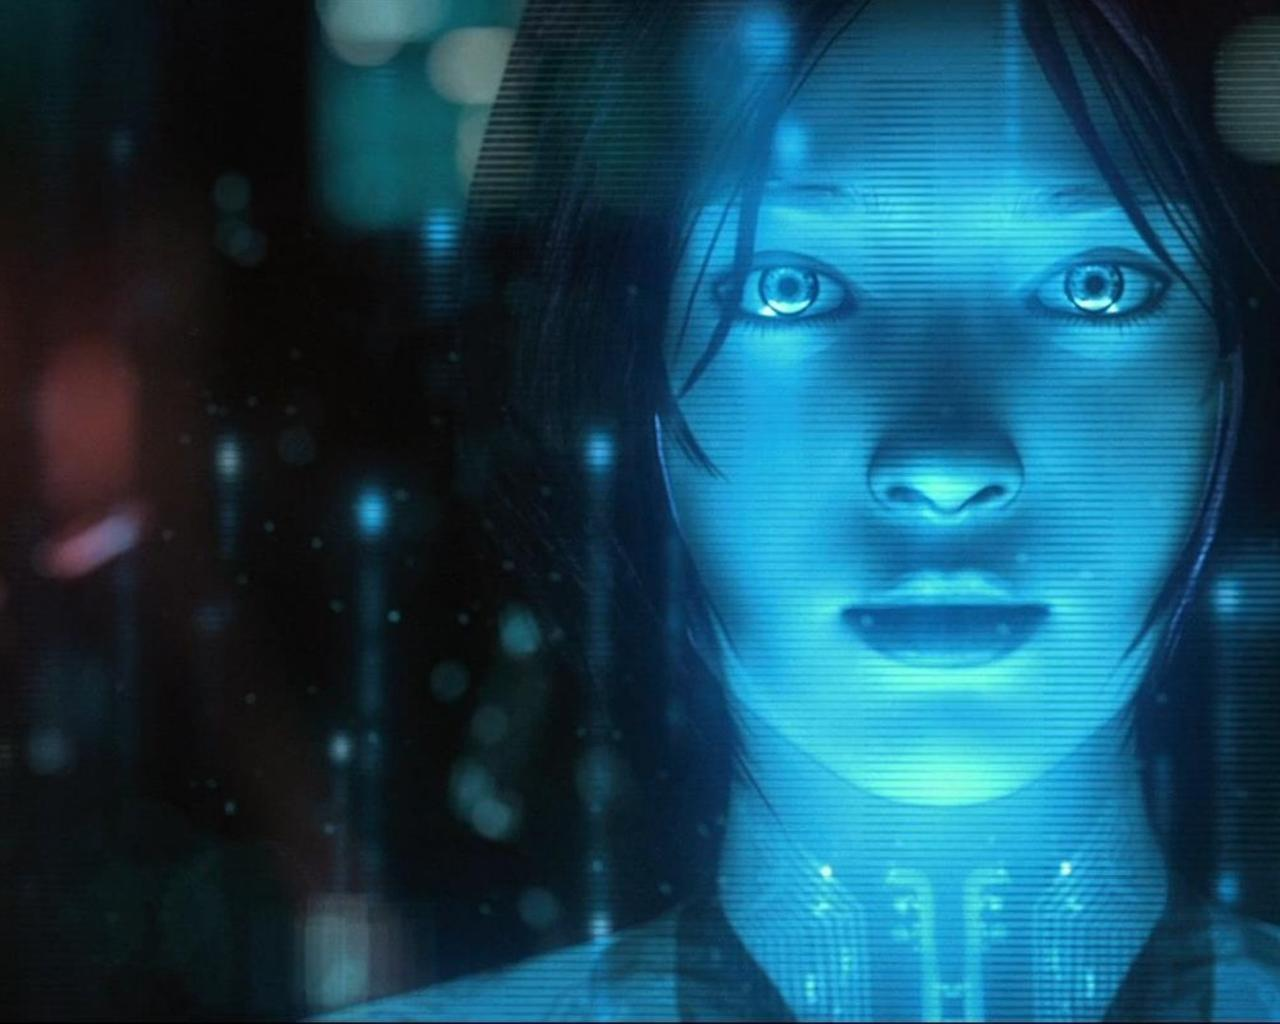 cortana wallpaper2 - photo #1